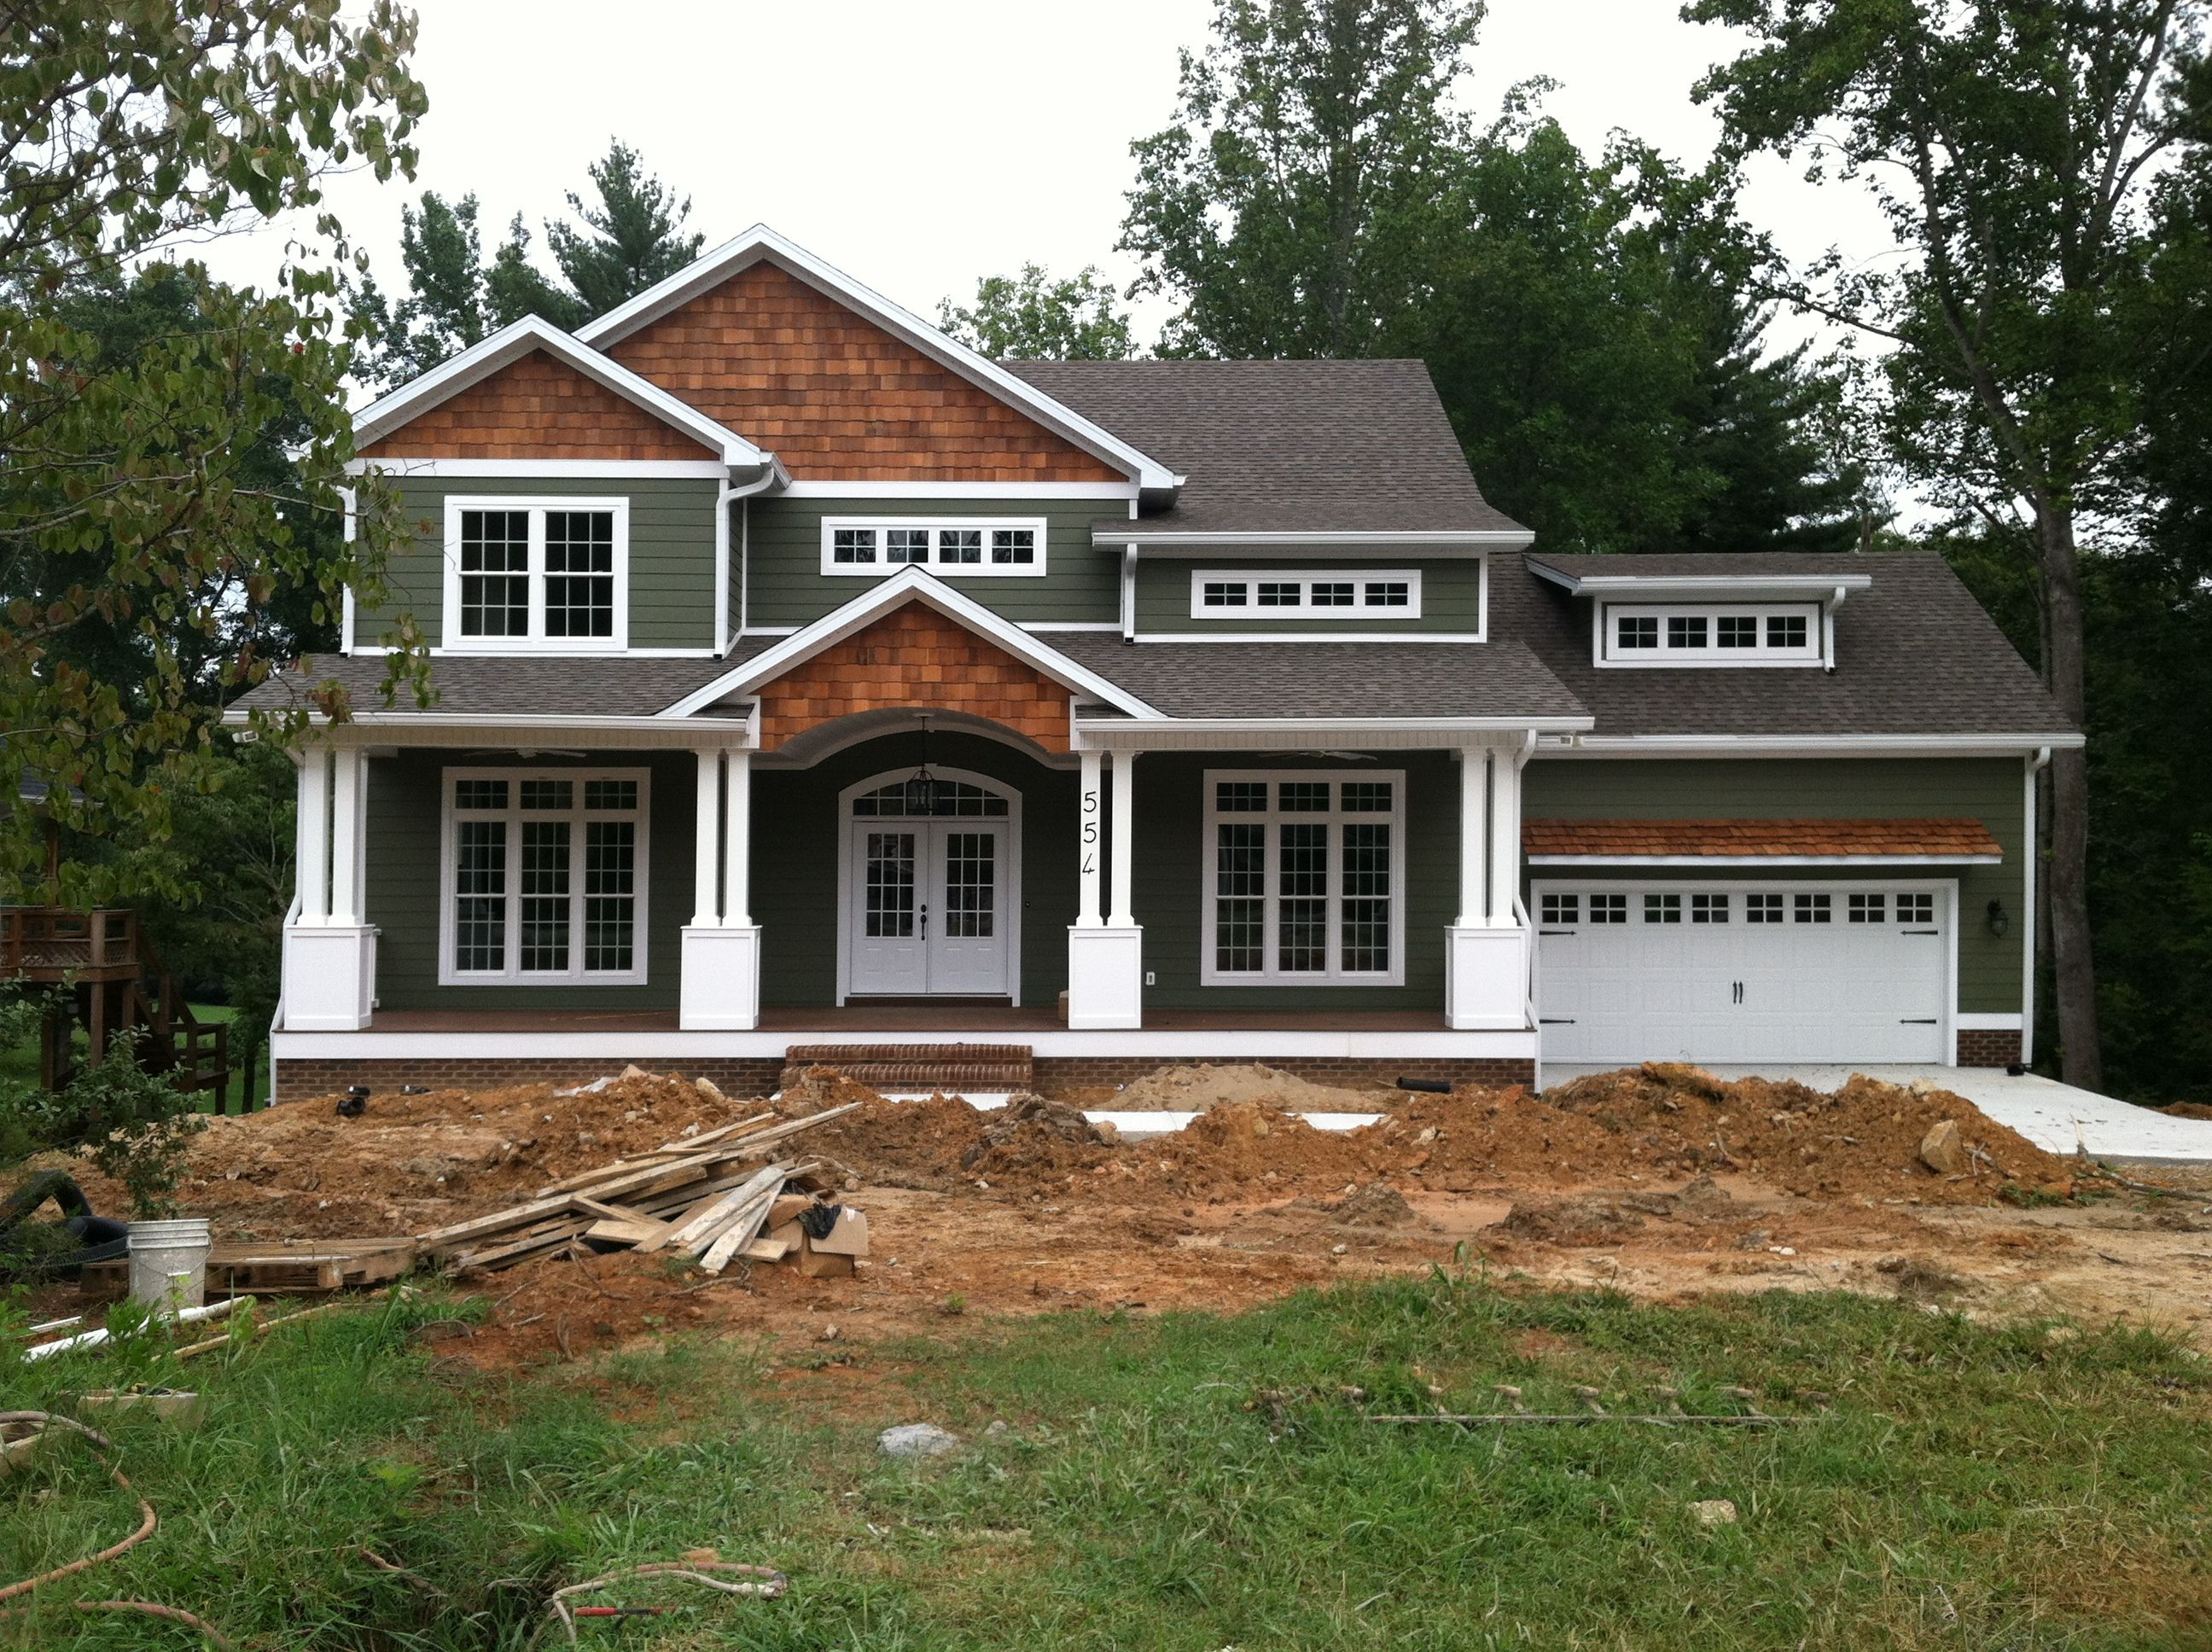 Craftsman style home turn the garage to the side change the color and add some rock work - Red exterior wood paint plan ...